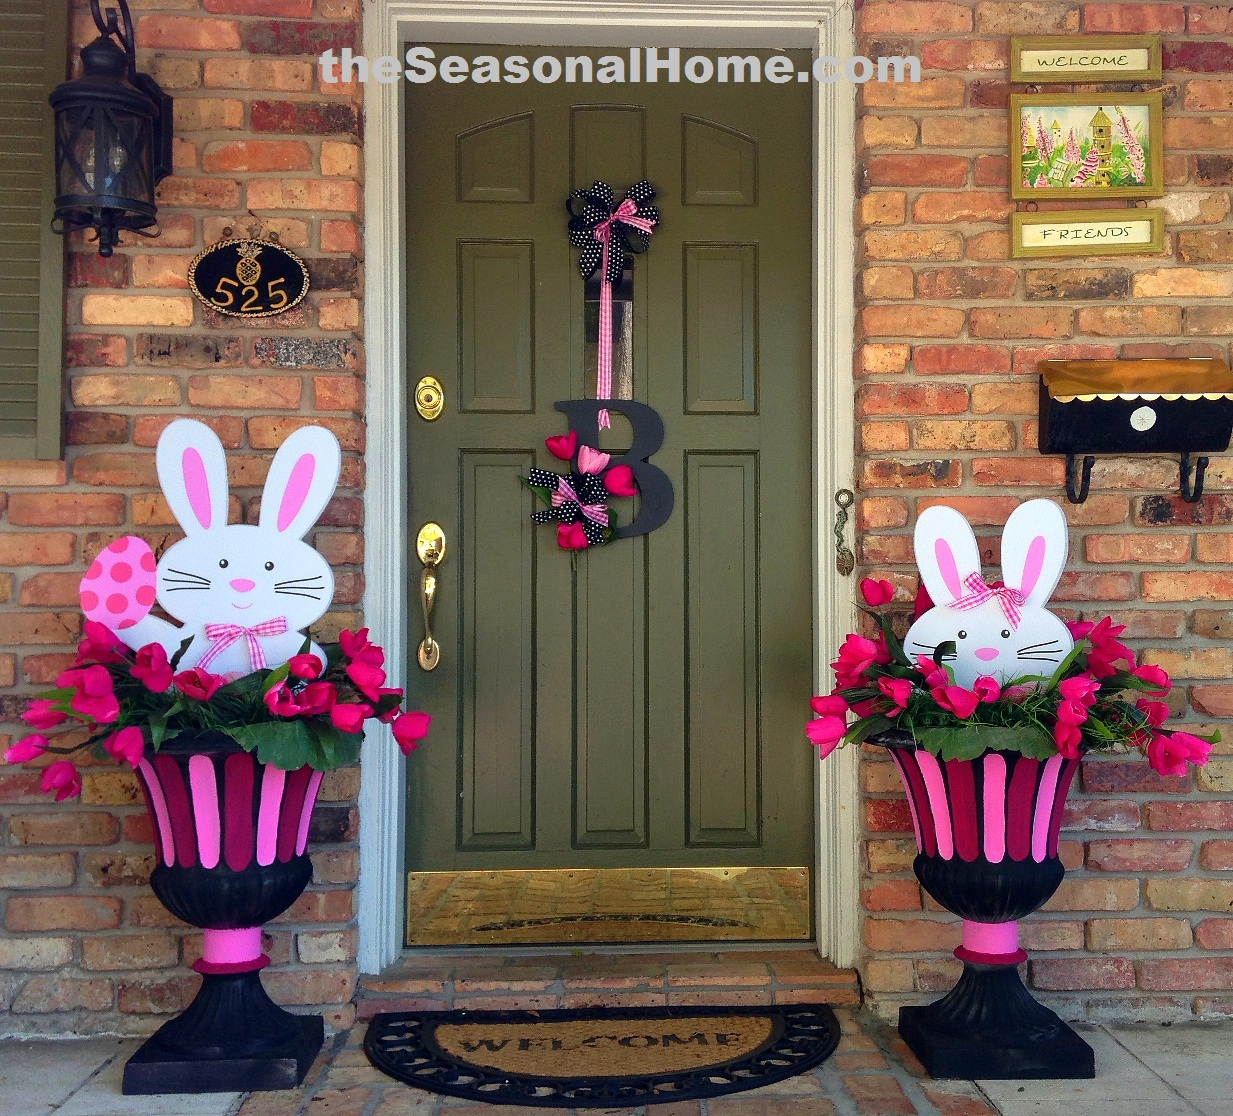 2 Easter Bunnies  3 different Looks!  The Seasonal Home